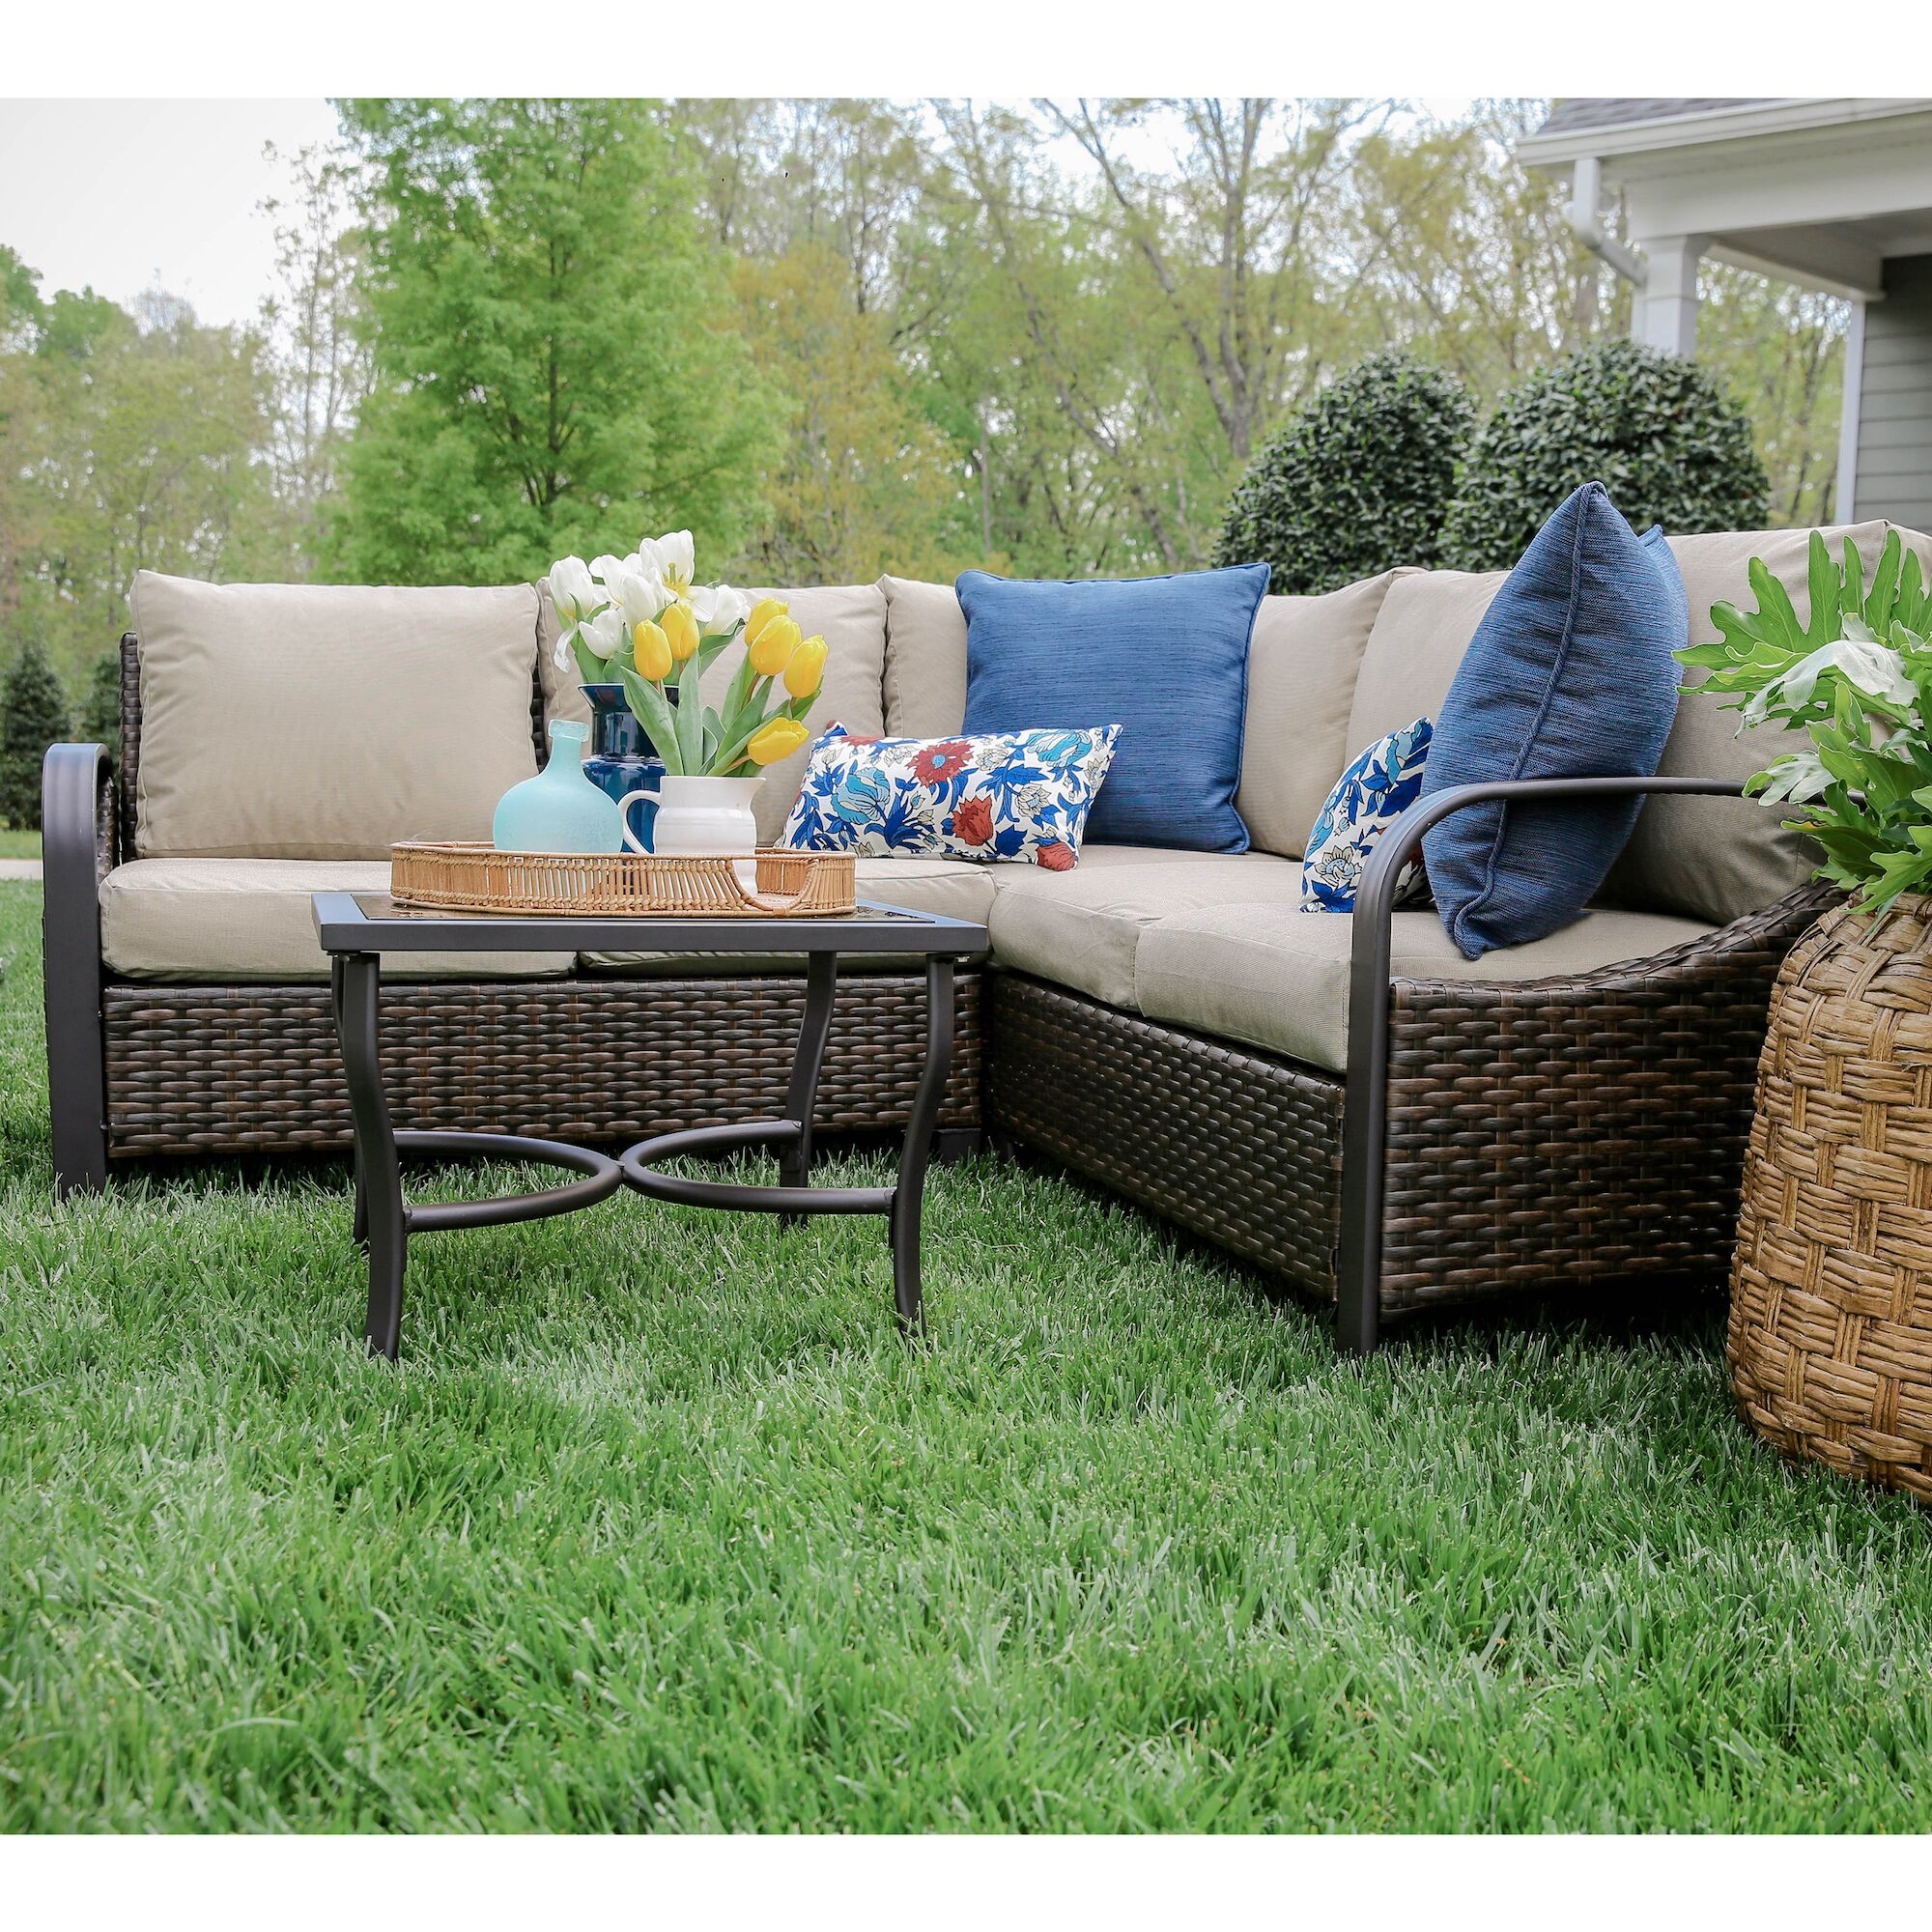 Trenton 4 Piece Sectional Set with Cushions Fabric: Tan